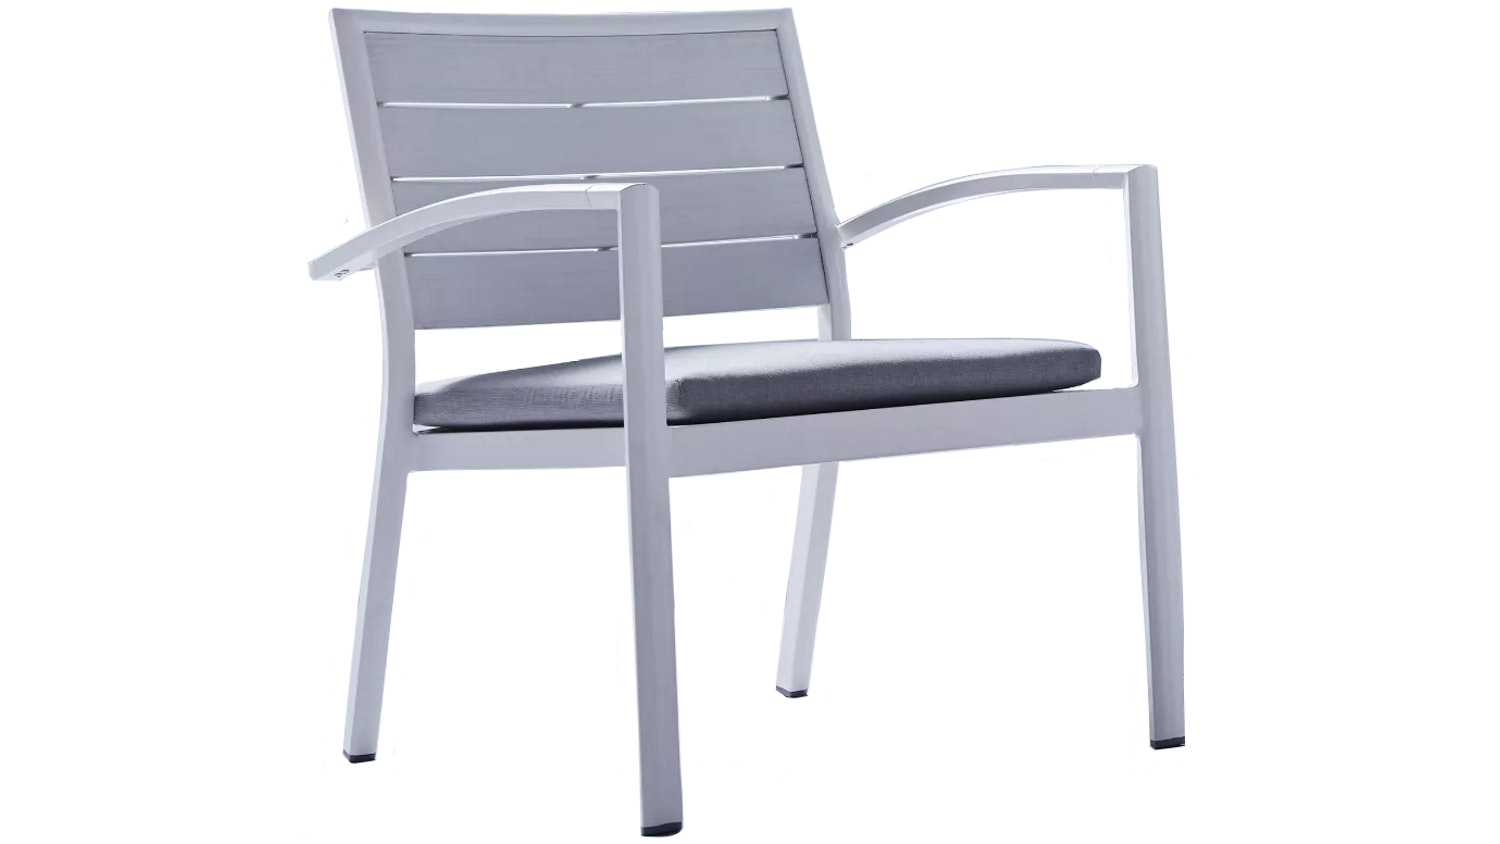 Charlie Outdoor Lounge Chair with Cushion - White